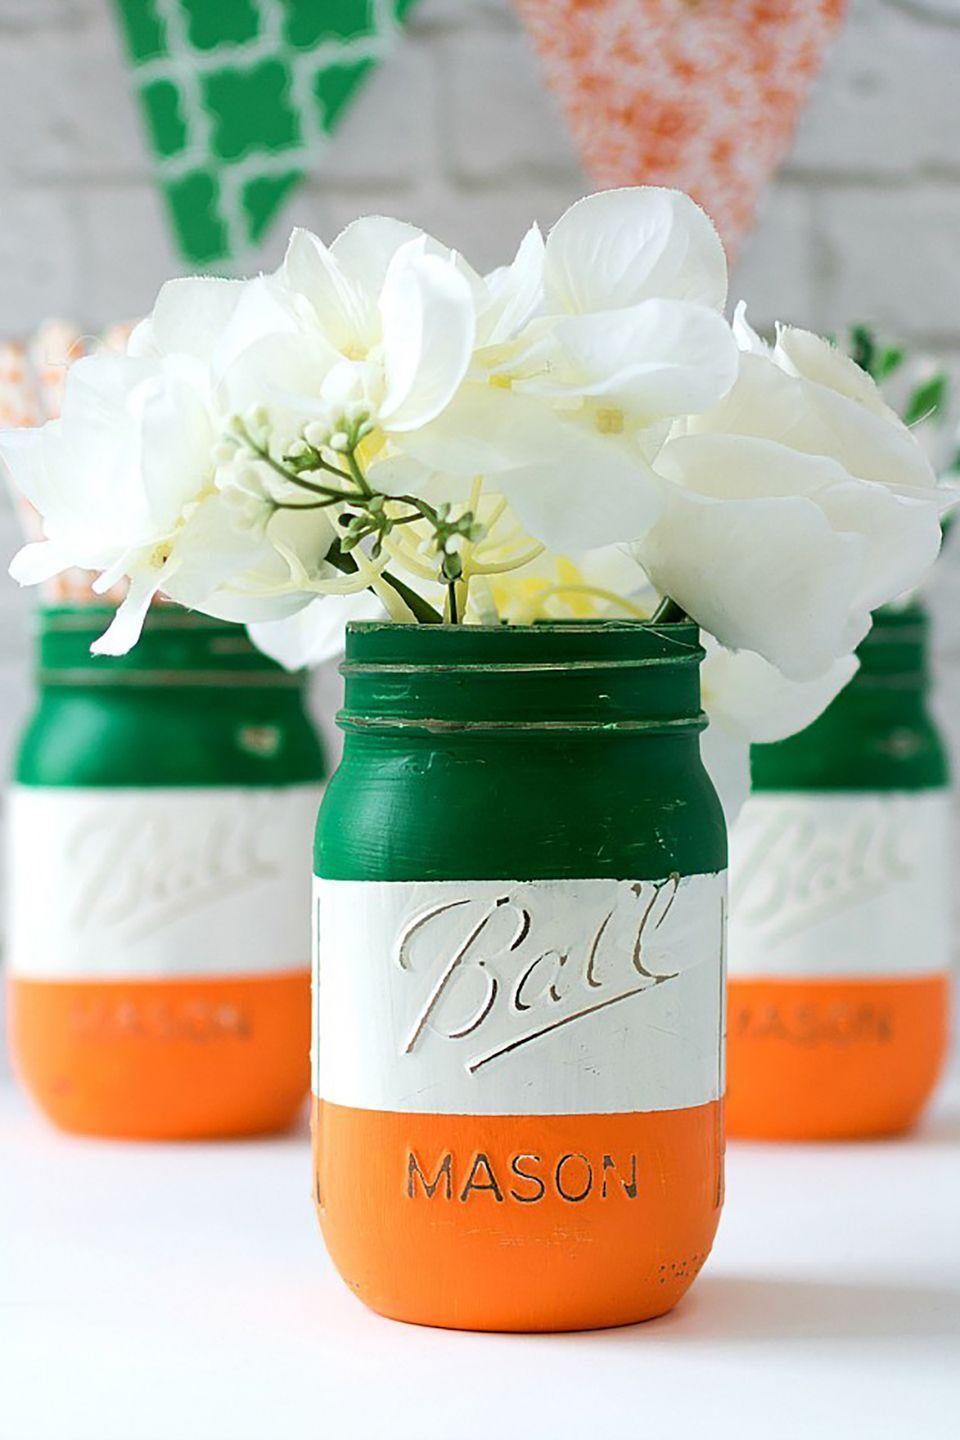 """<p>If you have any Irish blood in you, celebrate your ancestry with these bright and beautiful jars.</p><p><strong>Get the tutorial at <a href=""""http://masonjarcraftslove.com/irish-flag-mason-jars/"""" rel=""""nofollow noopener"""" target=""""_blank"""" data-ylk=""""slk:Mason Jar Crafts"""" class=""""link rapid-noclick-resp"""">Mason Jar Crafts</a>. </strong></p>"""